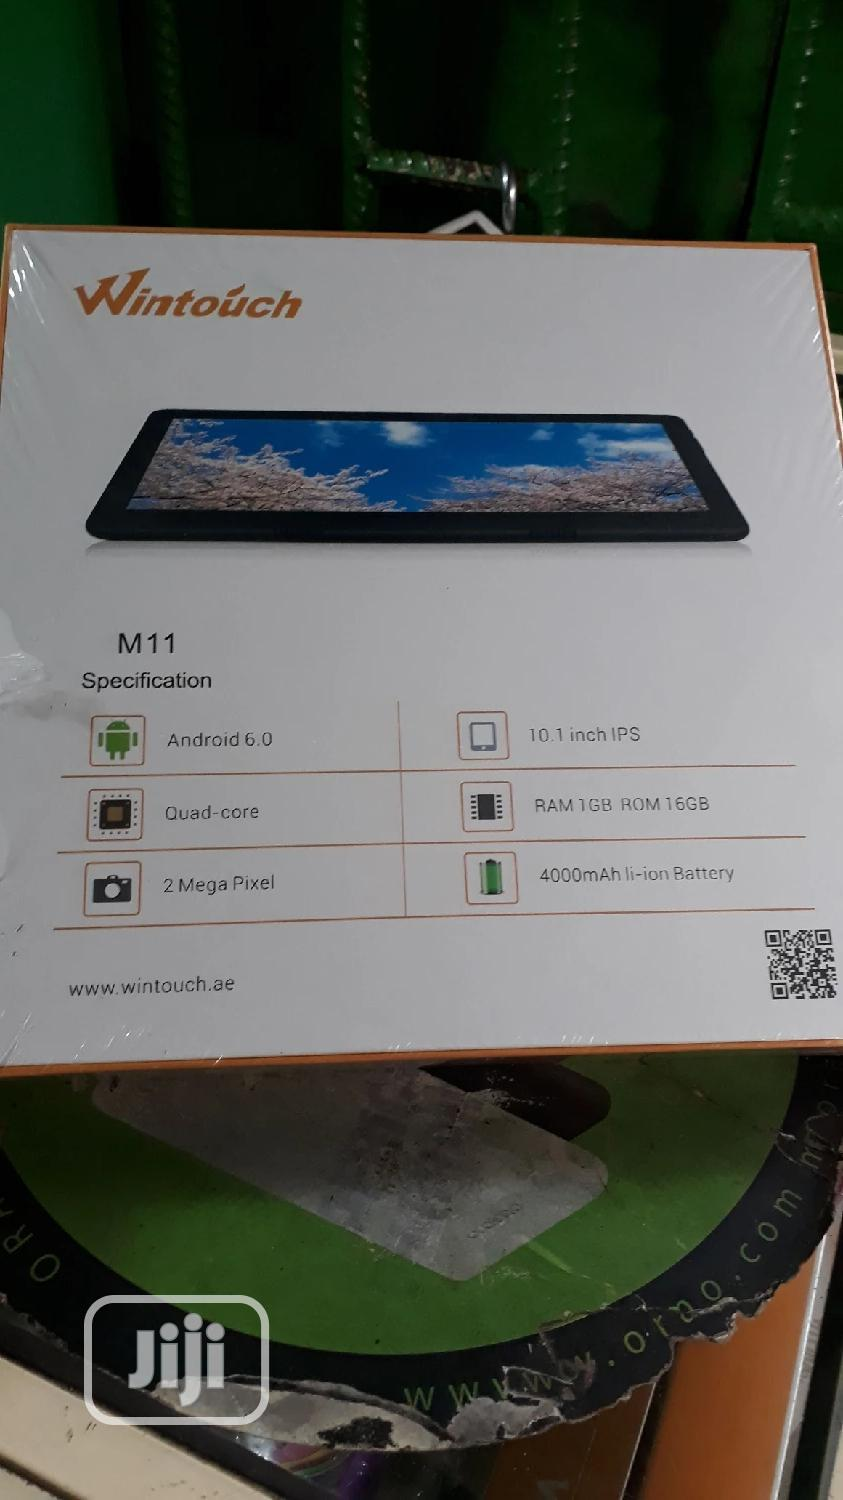 New Wintouch M11 16 GB | Tablets for sale in Ikeja, Lagos State, Nigeria